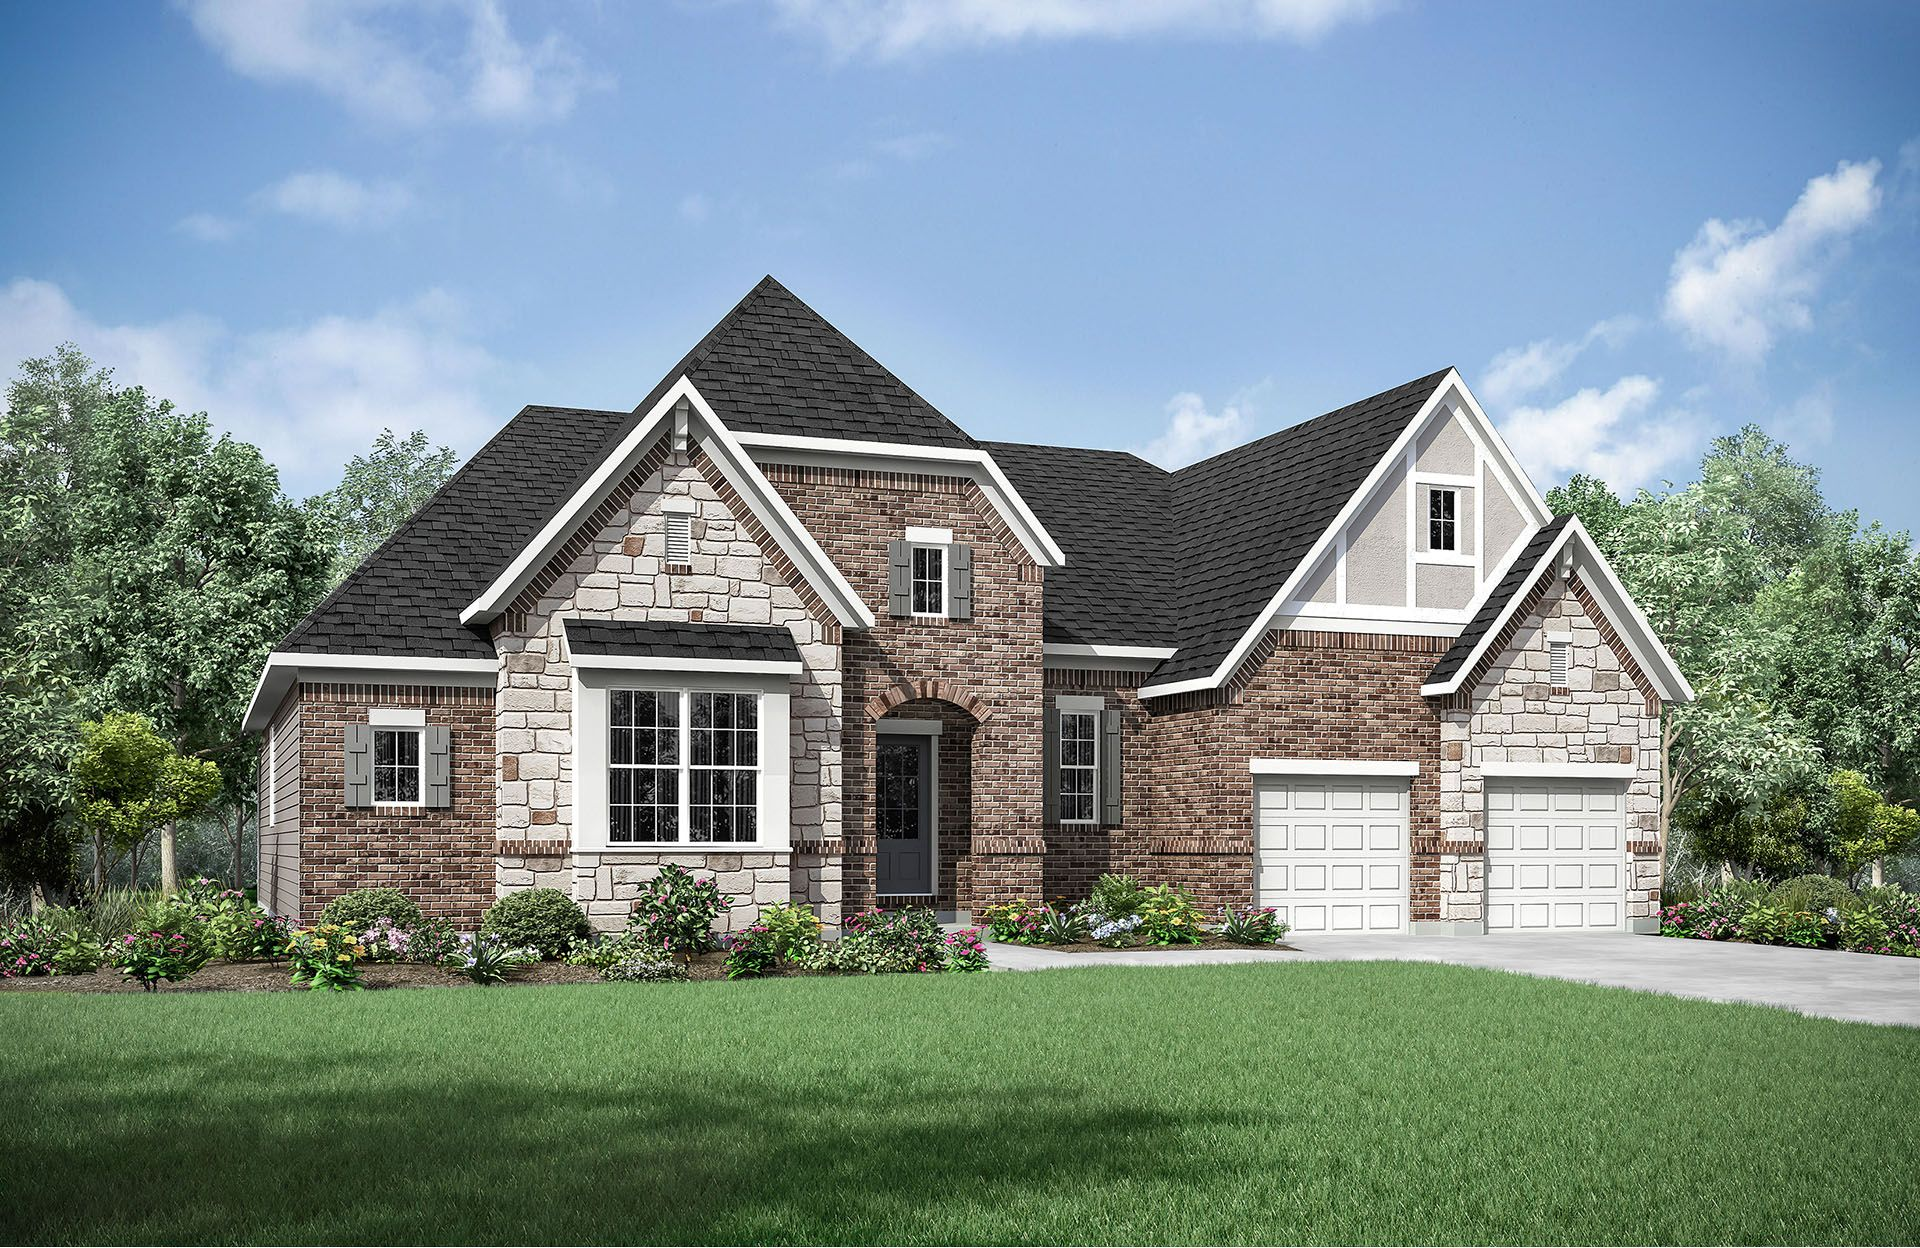 Single Family for Sale at Lyndhurst 11188 War Admiral Drive Union, Kentucky 41091 United States